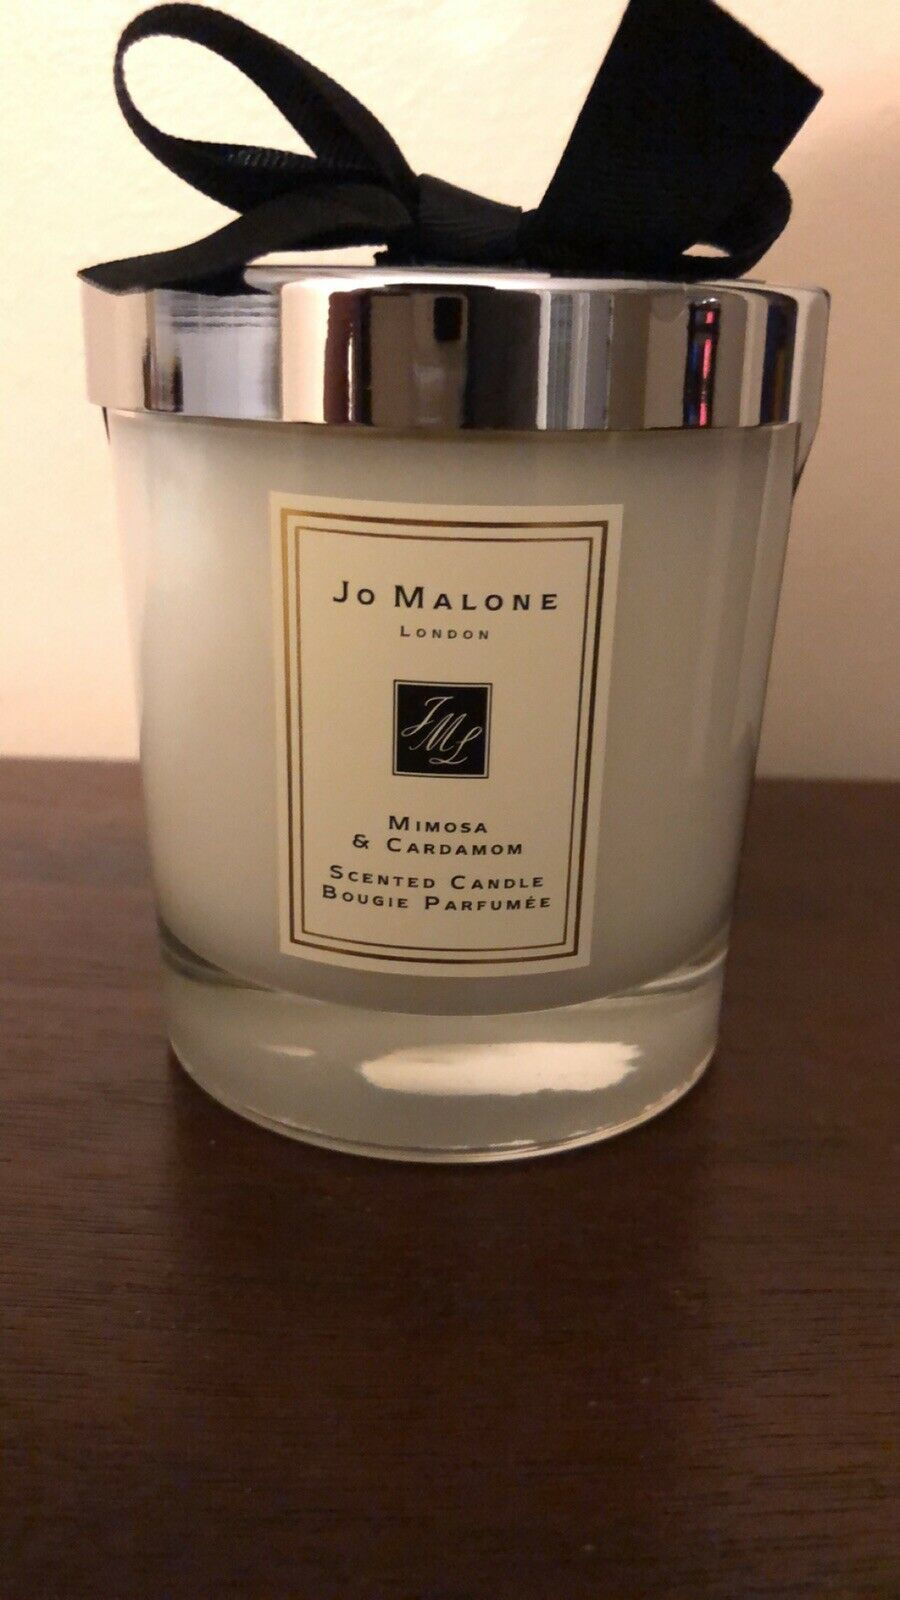 Jo Malone London Scented Candle Mimosa & Cardamom (7oz 2.5inch) NEW